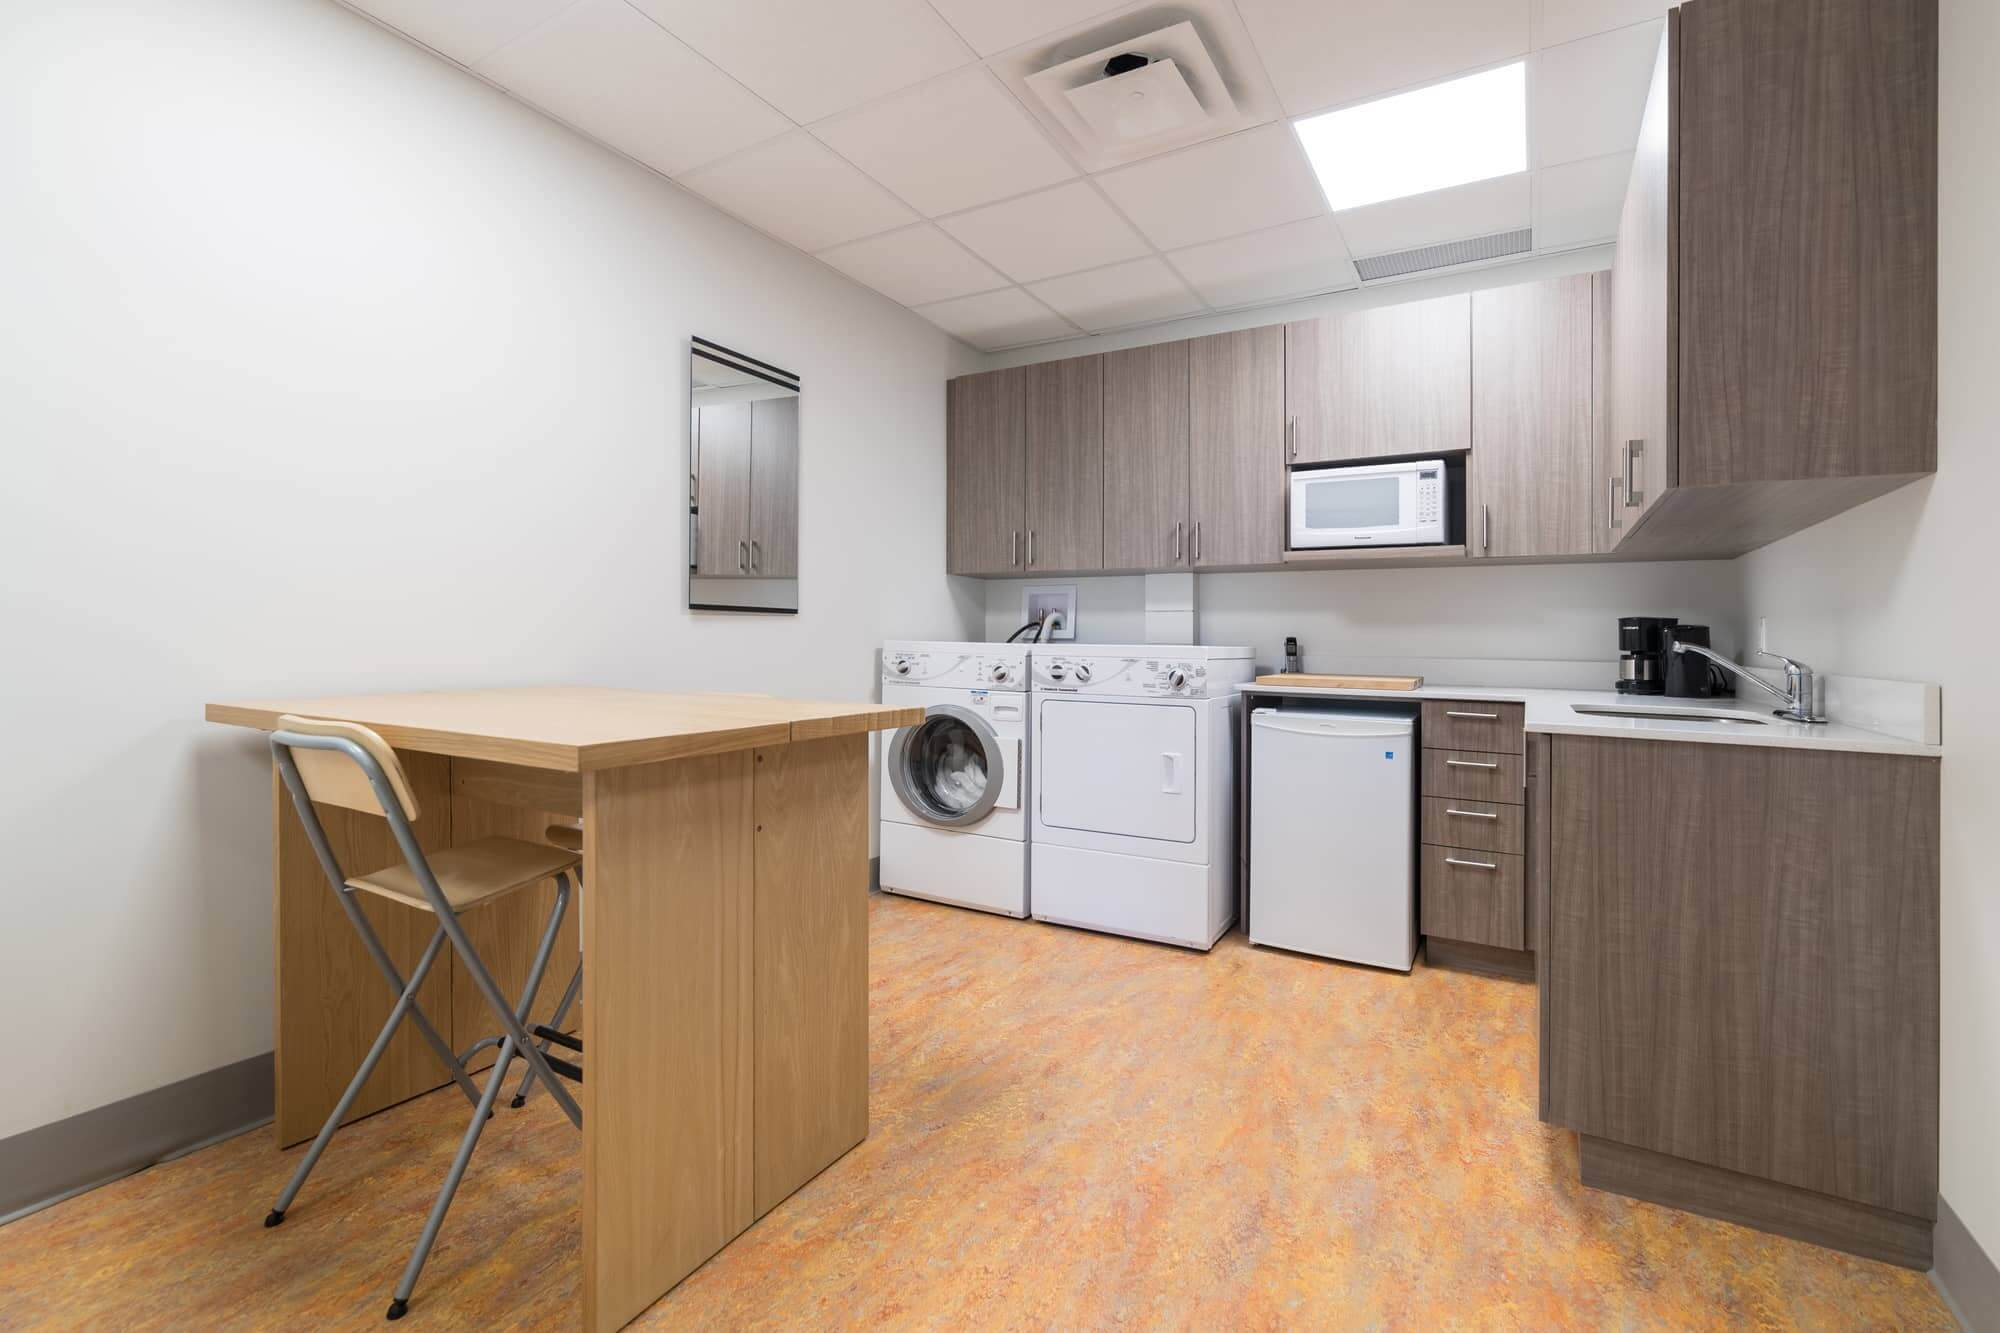 employee-room-with-washer-and-dryer